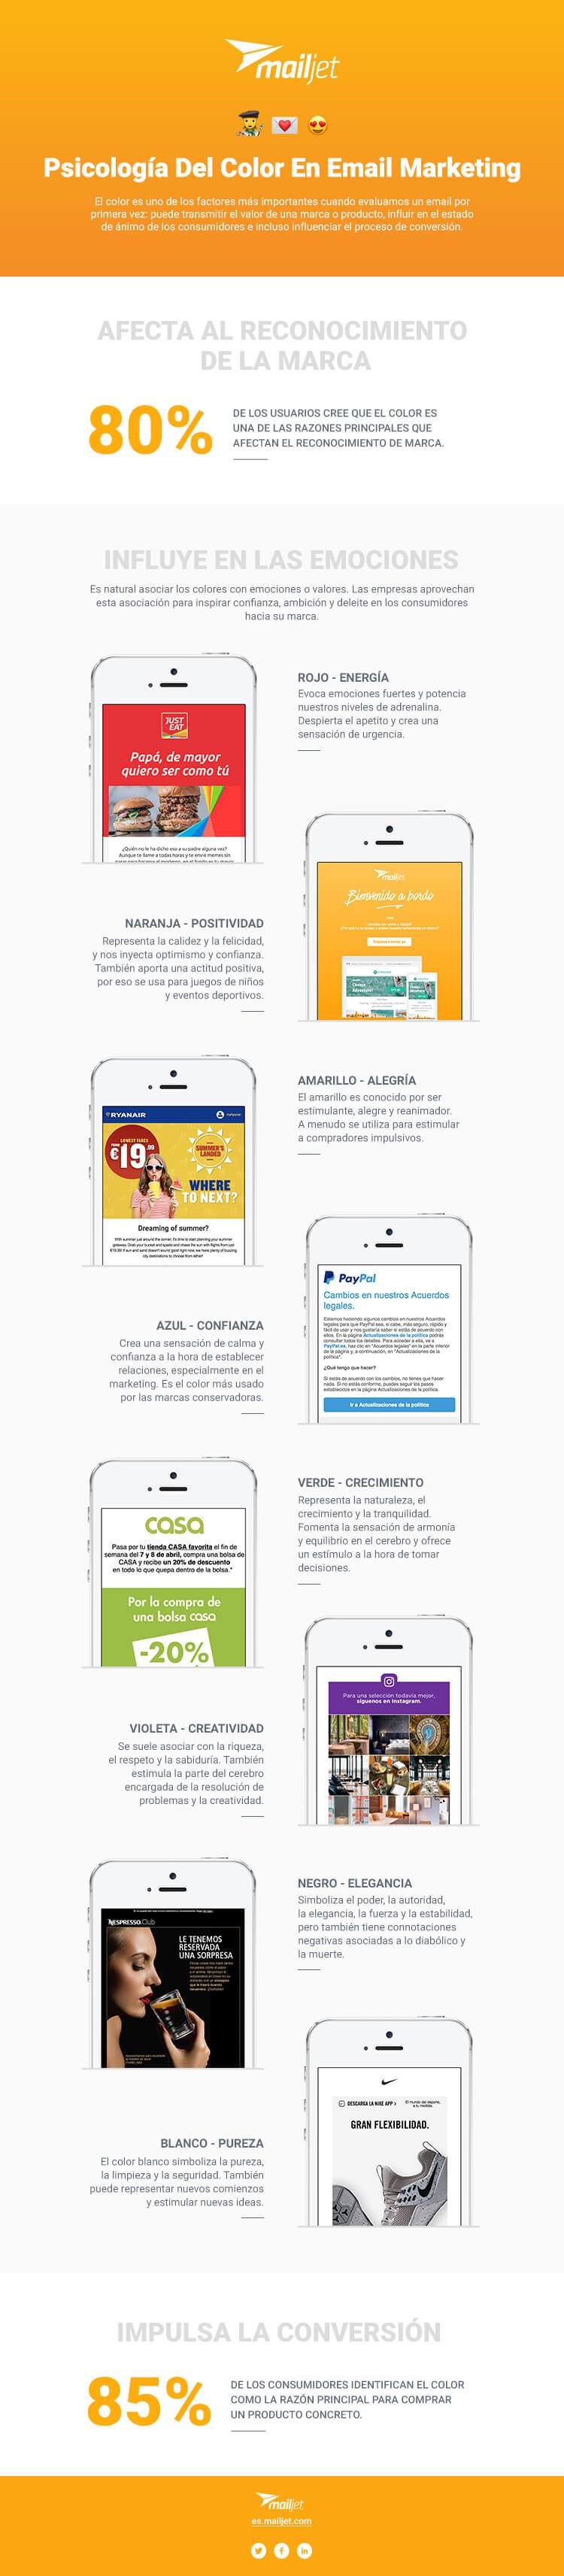 Psicología del color en email marketing #infografia #infographic #marketing